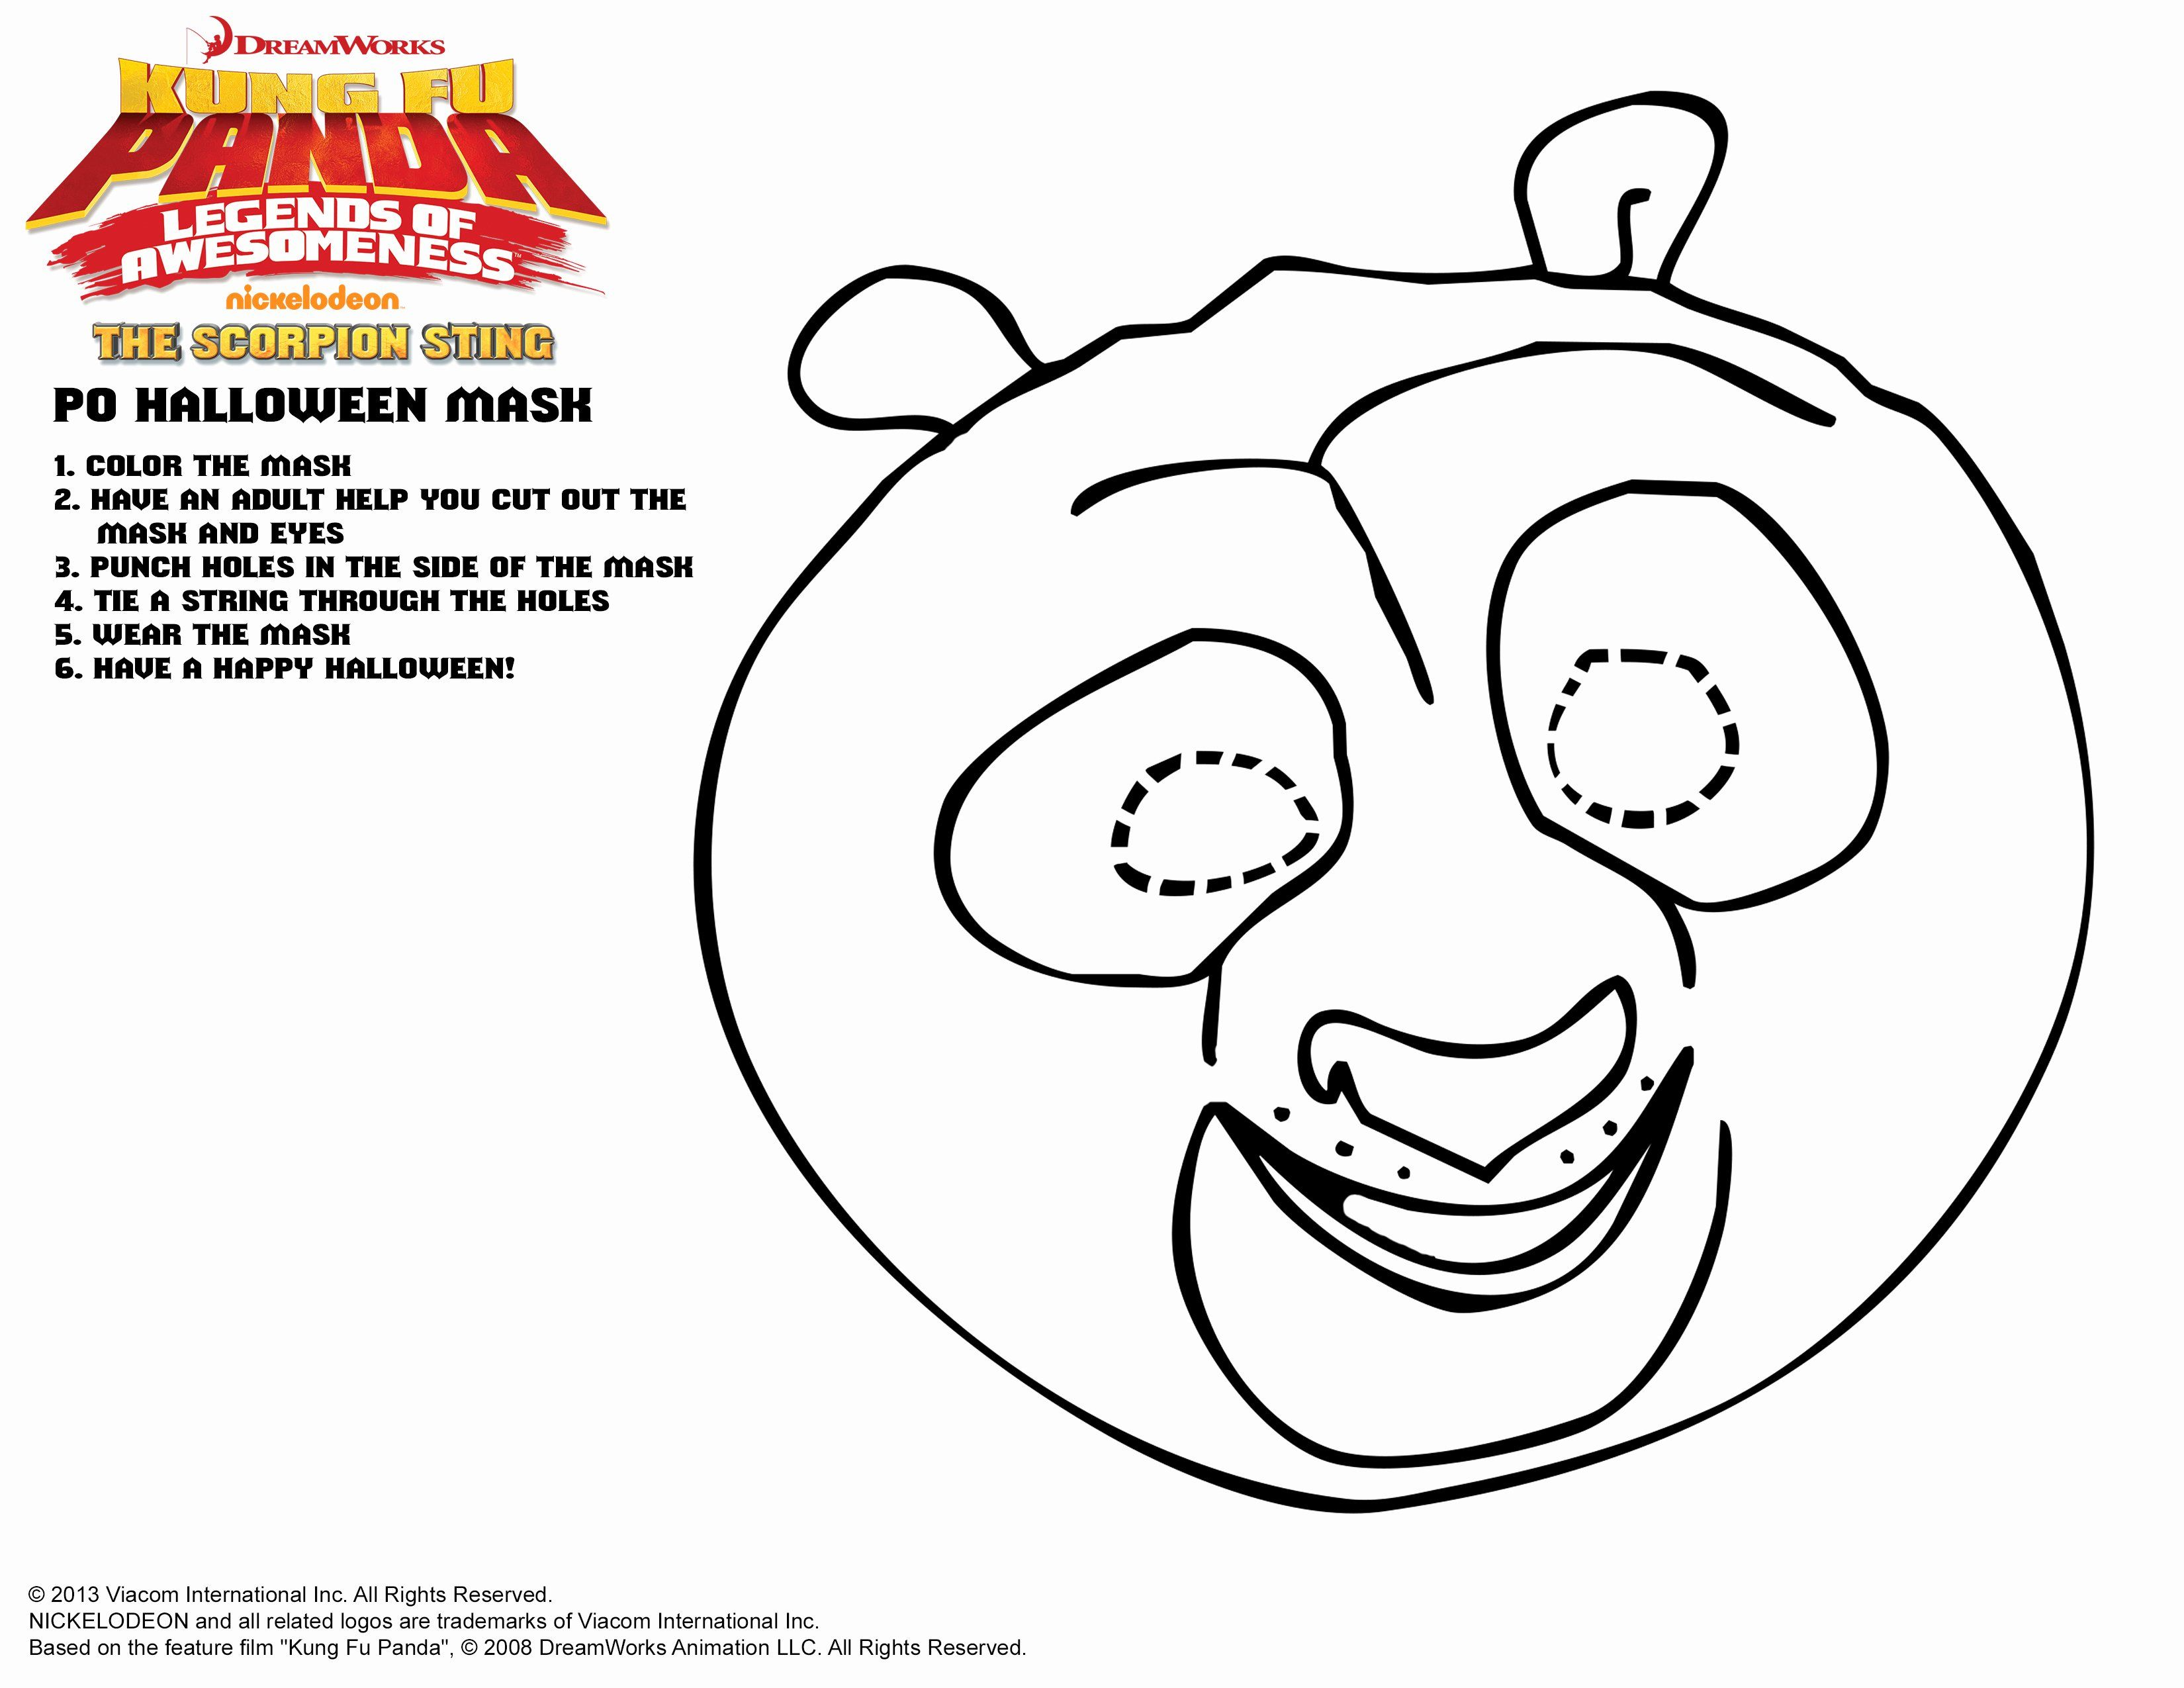 Combo Panda Coloring Page Unique Dreamworks Family S For Halloween Halloween Printables In 2020 Panda Coloring Pages Coloring Pages Inspirational Kung Fu Panda Party